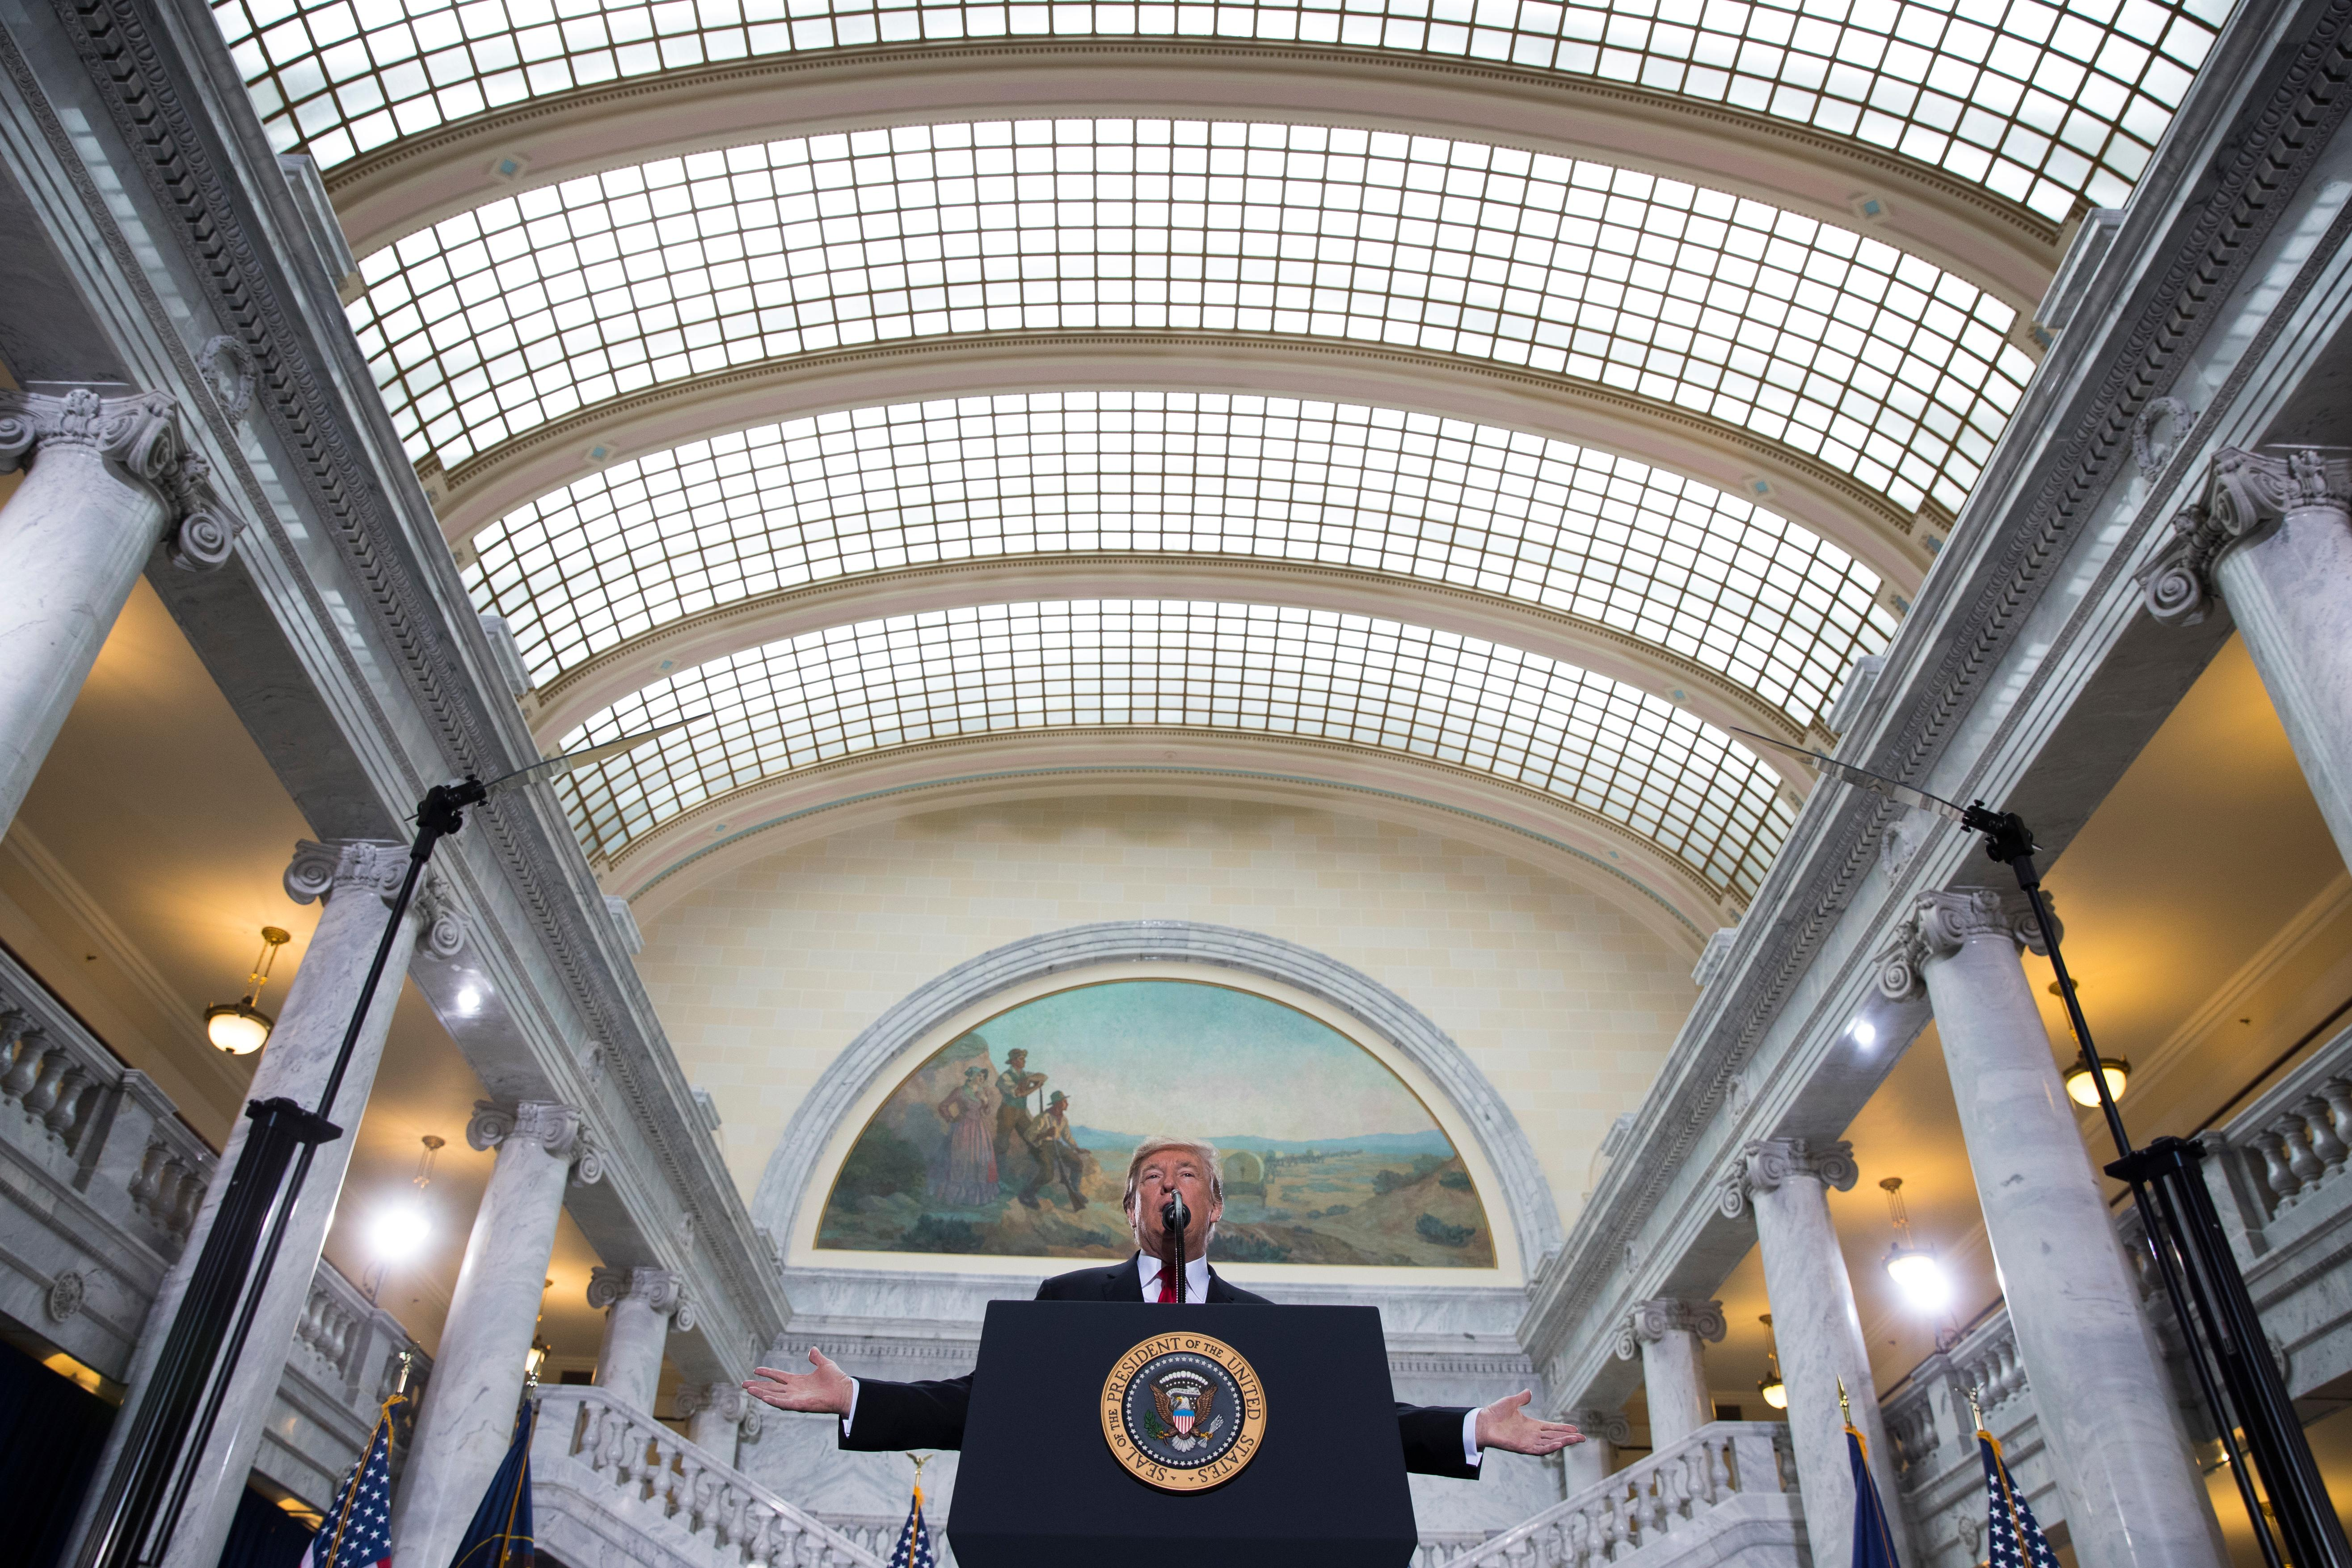 President Donald Trump speaks on his decision to shrink the size of Bears Ears and Grand Staircase Escalante national monuments, Monday, Dec. 4, 2017, in Salt Lake City. (AP Photo/Evan Vucci)